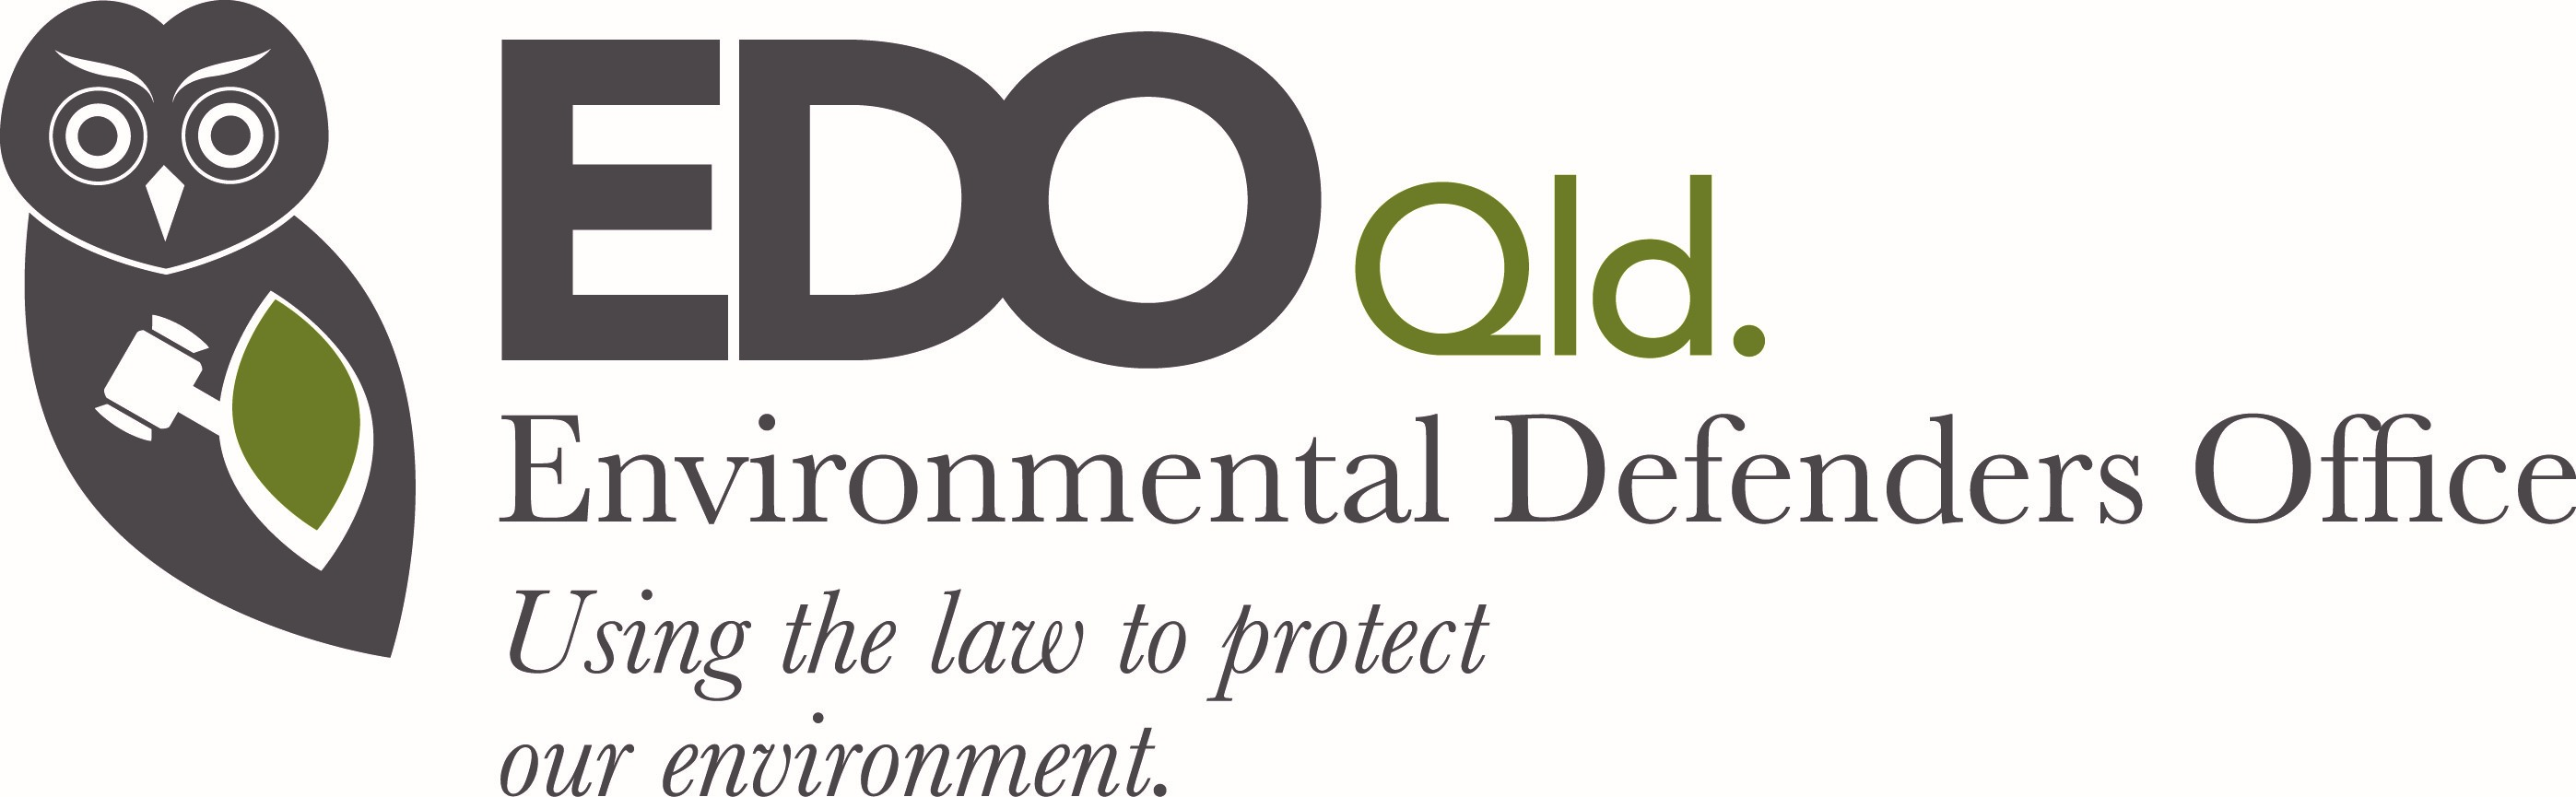 Environmental Defenders Office Qld